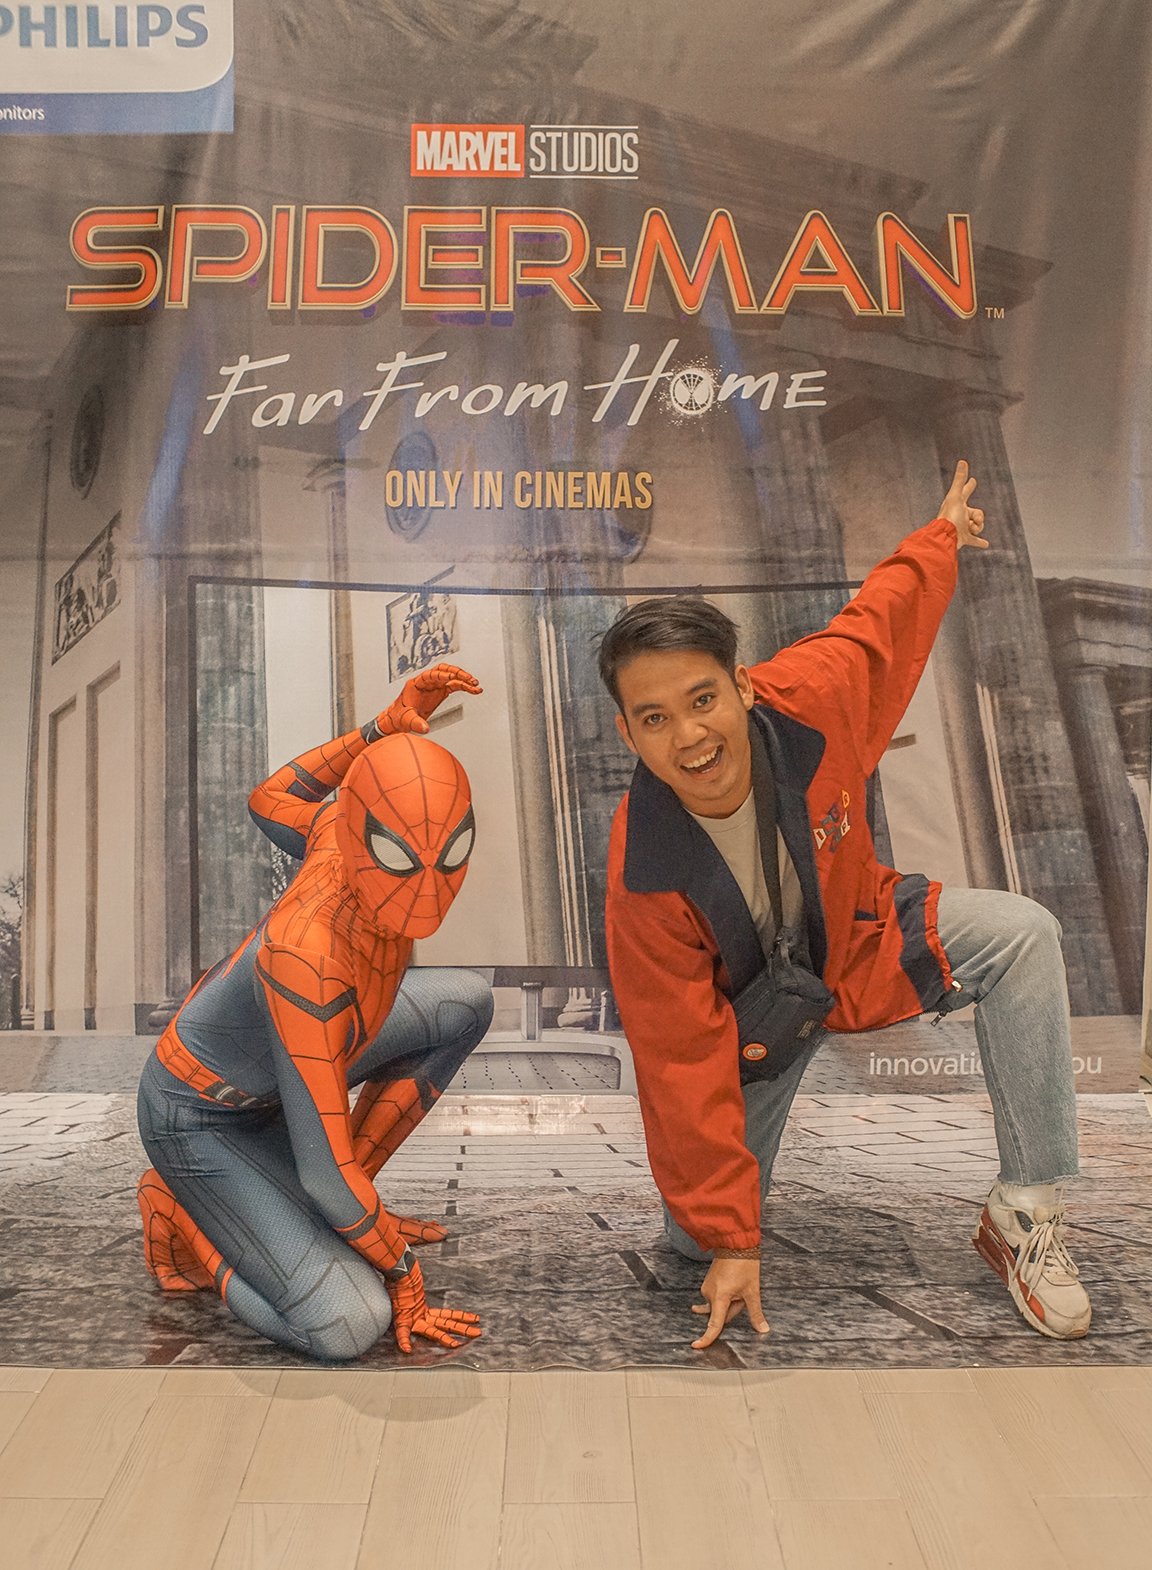 Philips Monitors team up with Sony Pictures for Spider-Man™: Far From Home